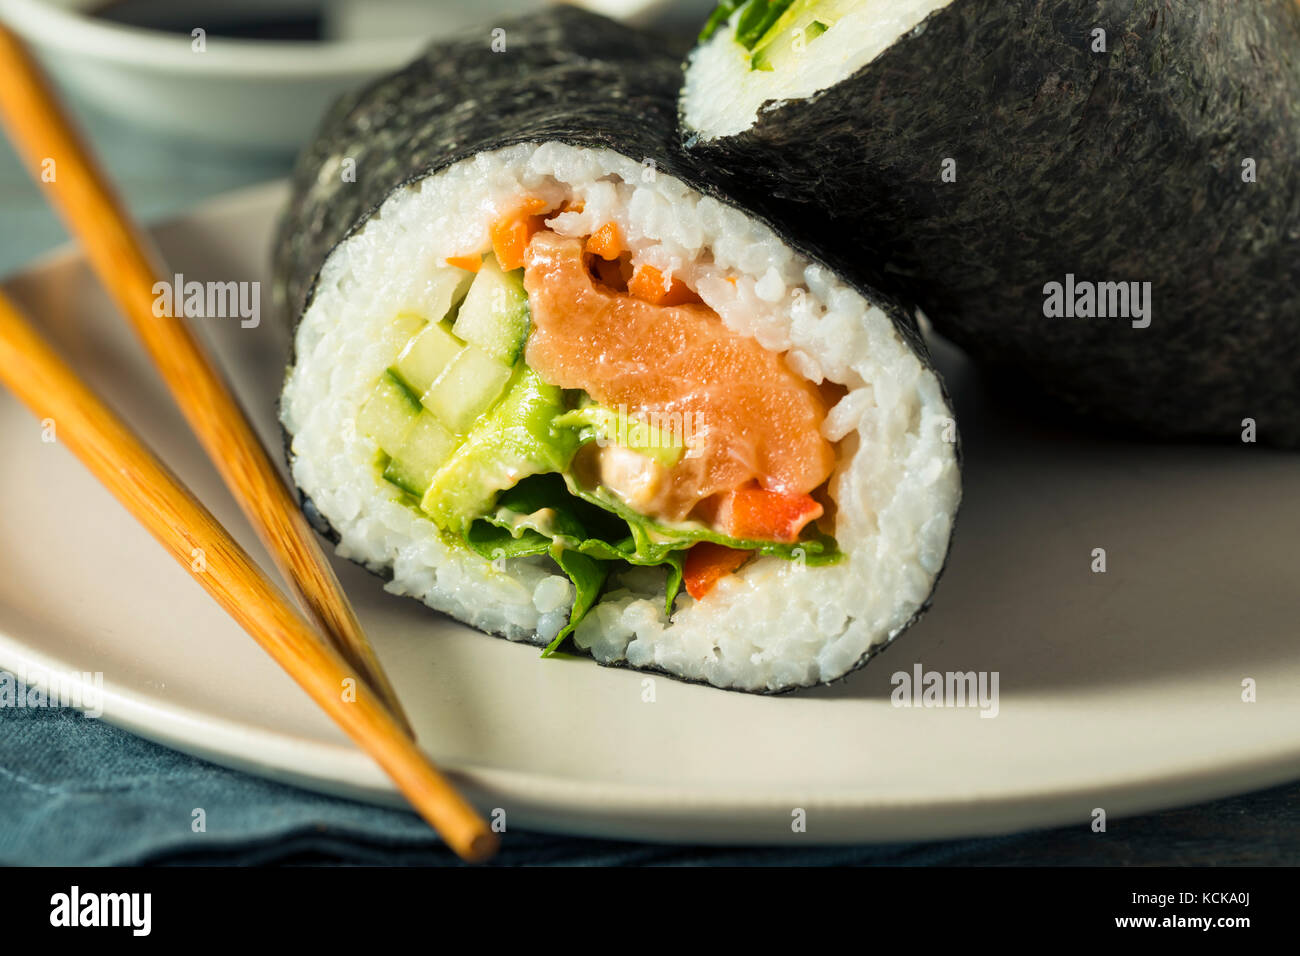 Raw Homemade Salmon Sushi Burrito with Seaweed Cucumber and Carrots - Stock Image